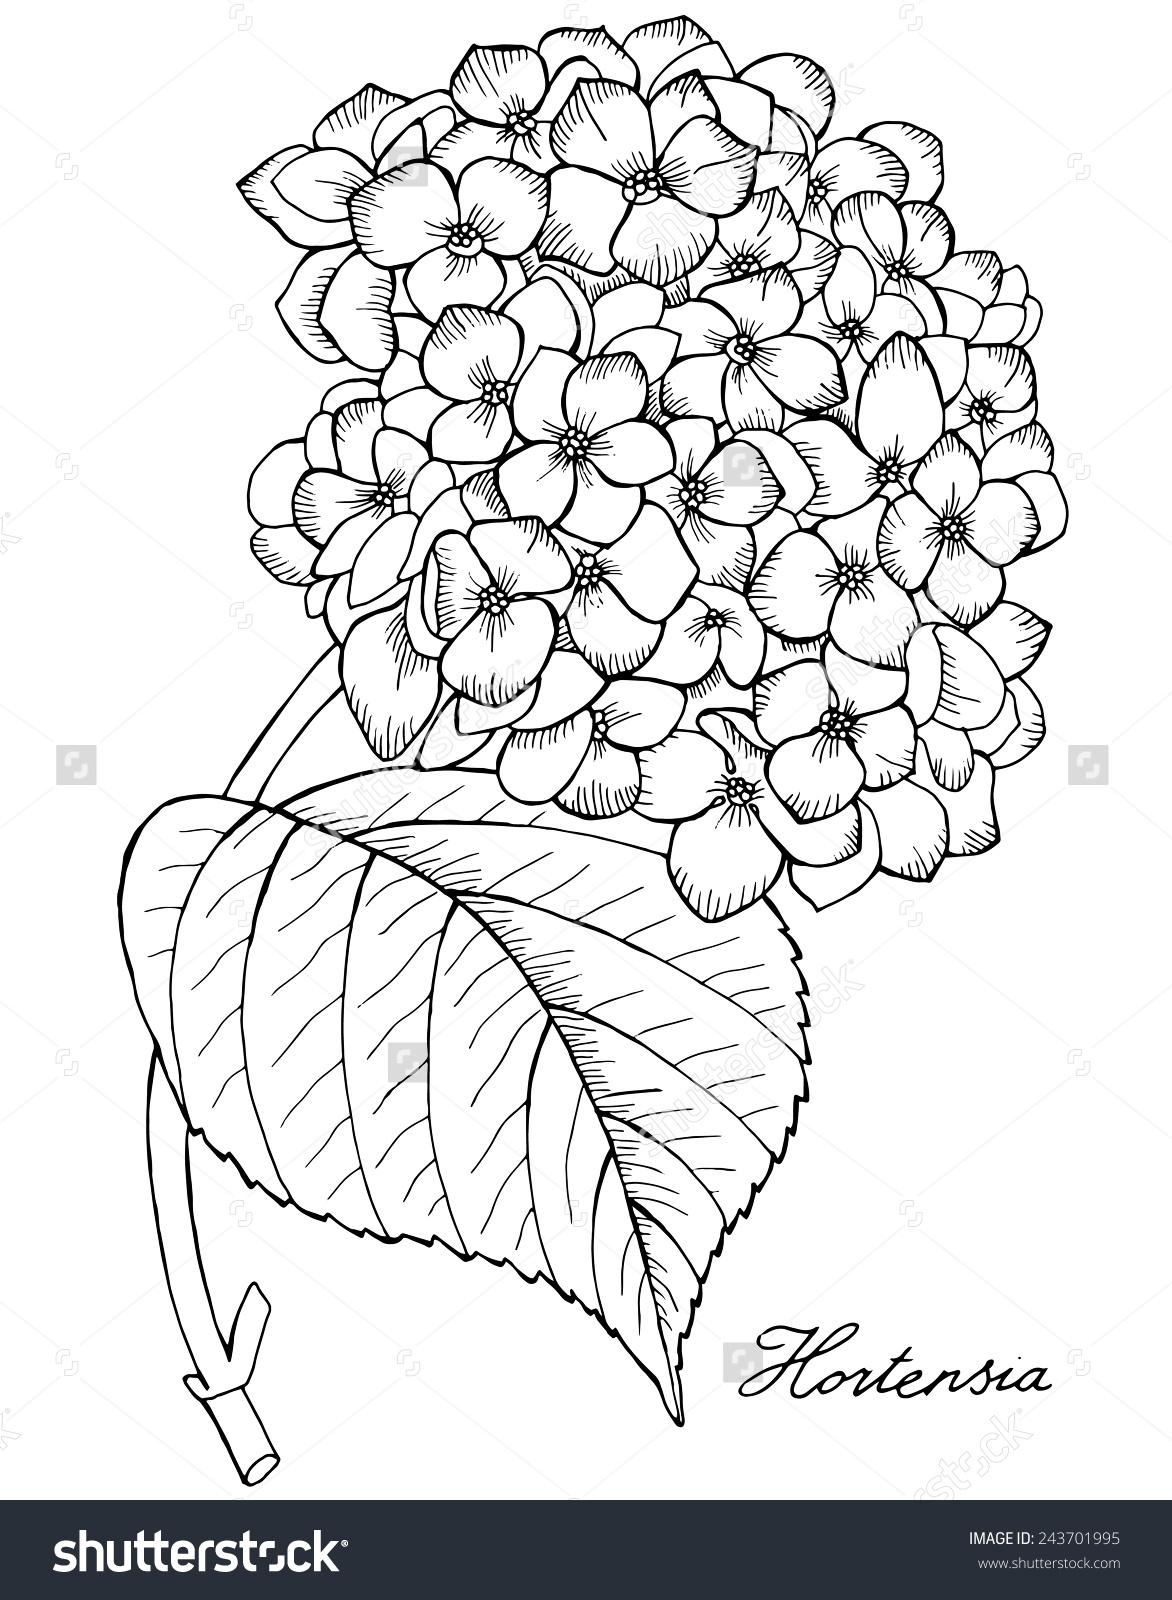 Hortensia Hydrangea Black White Stock Vector 243701995.